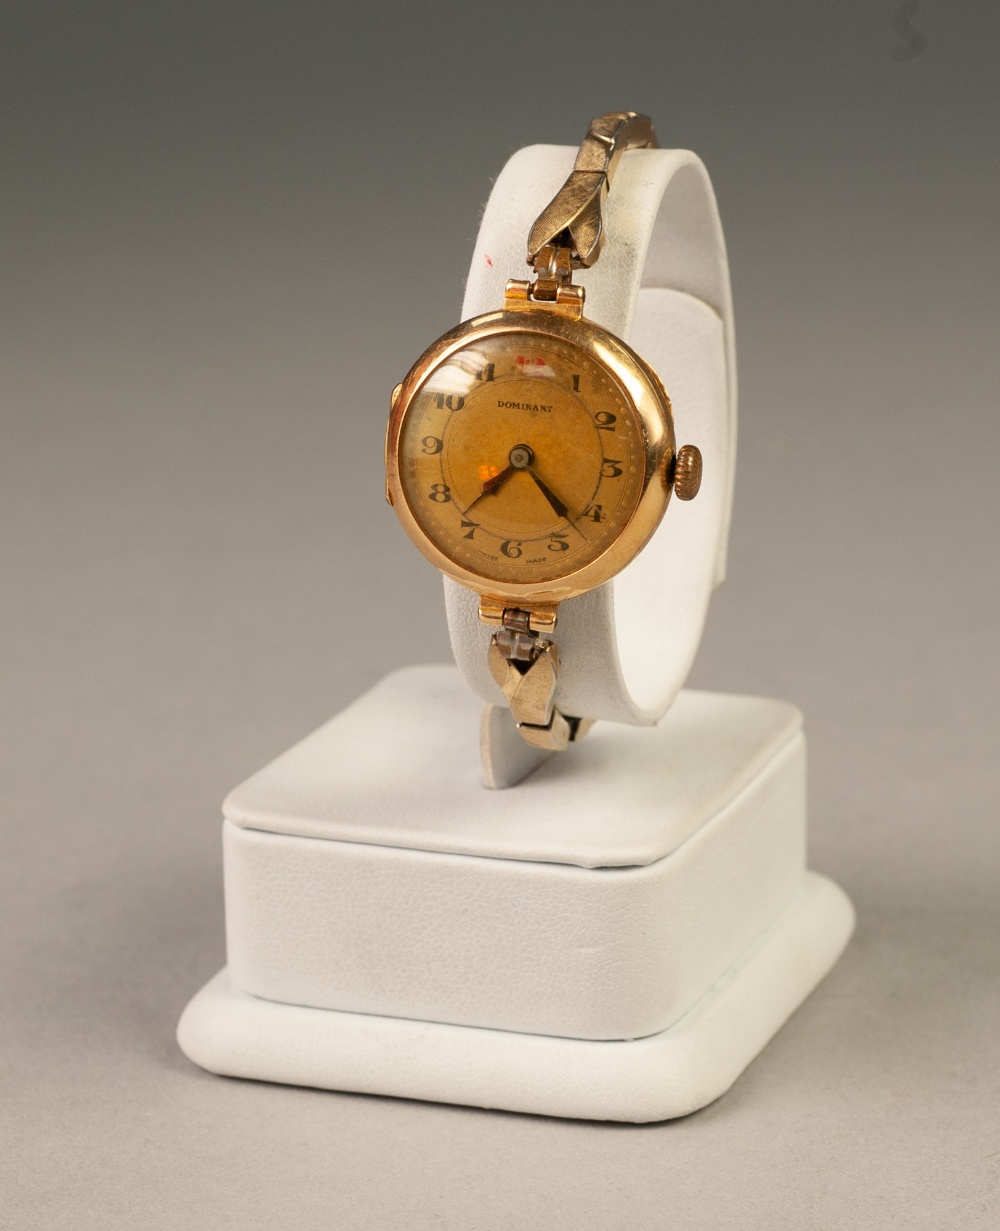 Lot 17 - LADY'S 'DOMINANT' SWISS WRIST WATCH, with 9ct gold circular case, 18 jewels movement, Arabic dial,